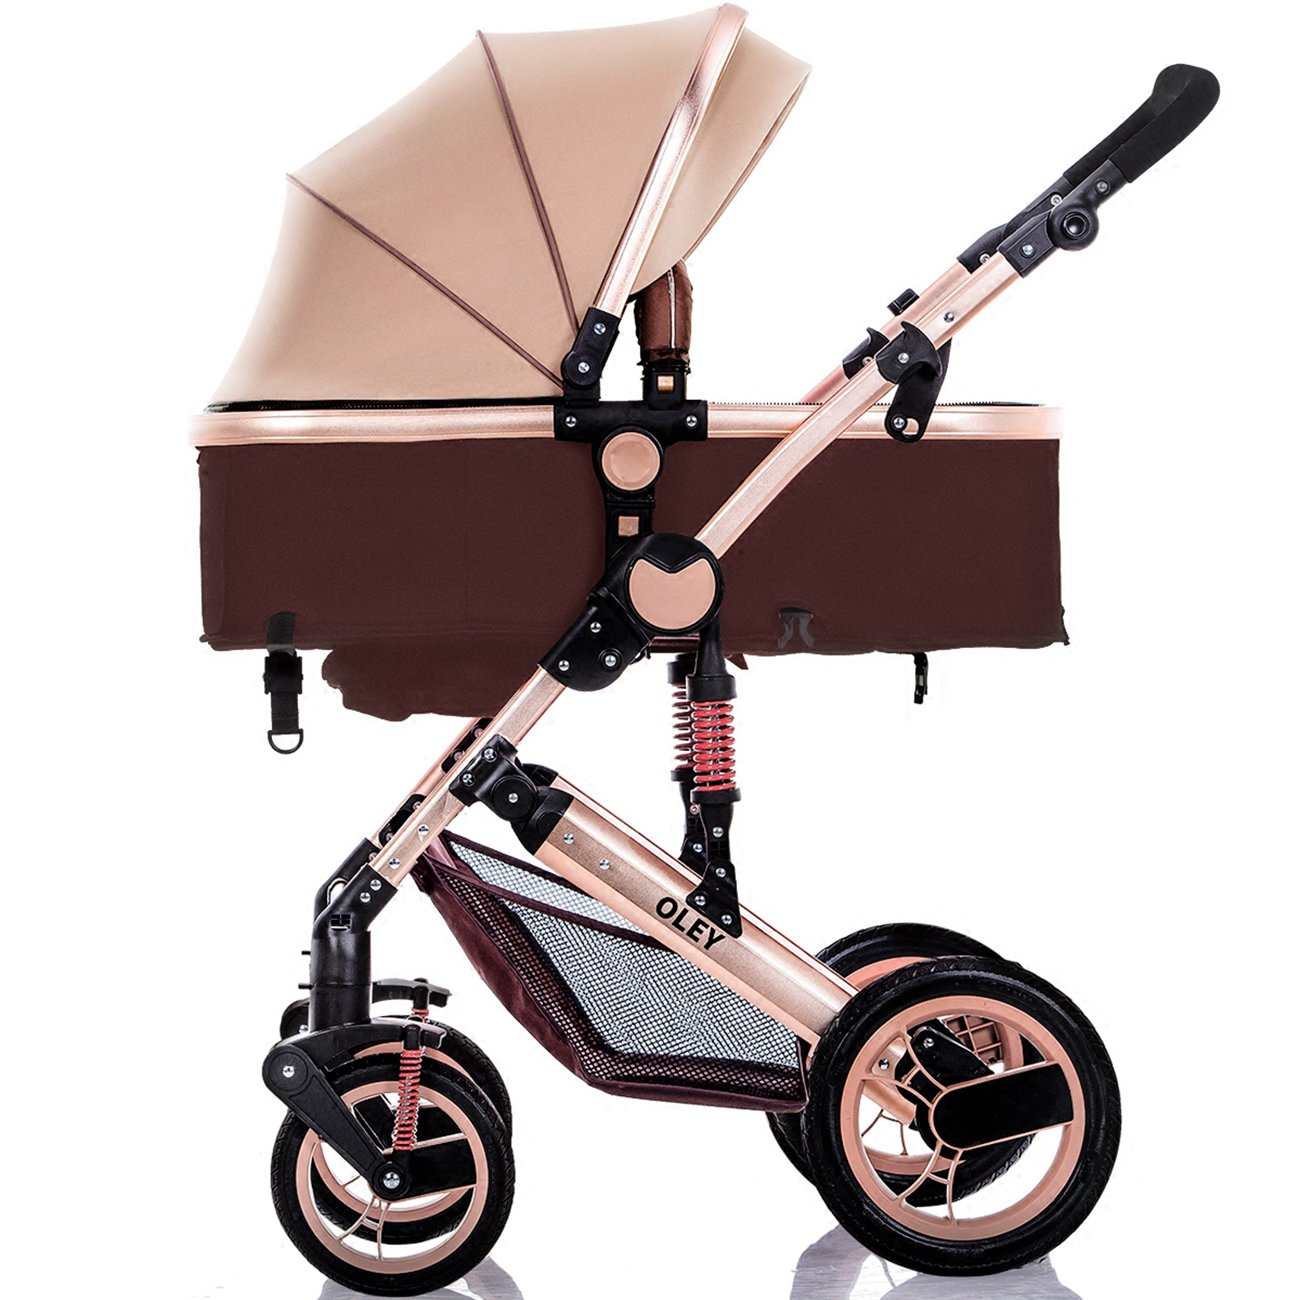 YBL High Landscape Baby Stroller Can sit Lie Down Four Rounds Strong Bearing Capacity Baby carriageTwo-Way Implementation Folding Suspension Suitable for 0-3 Year Old Baby Choice of City